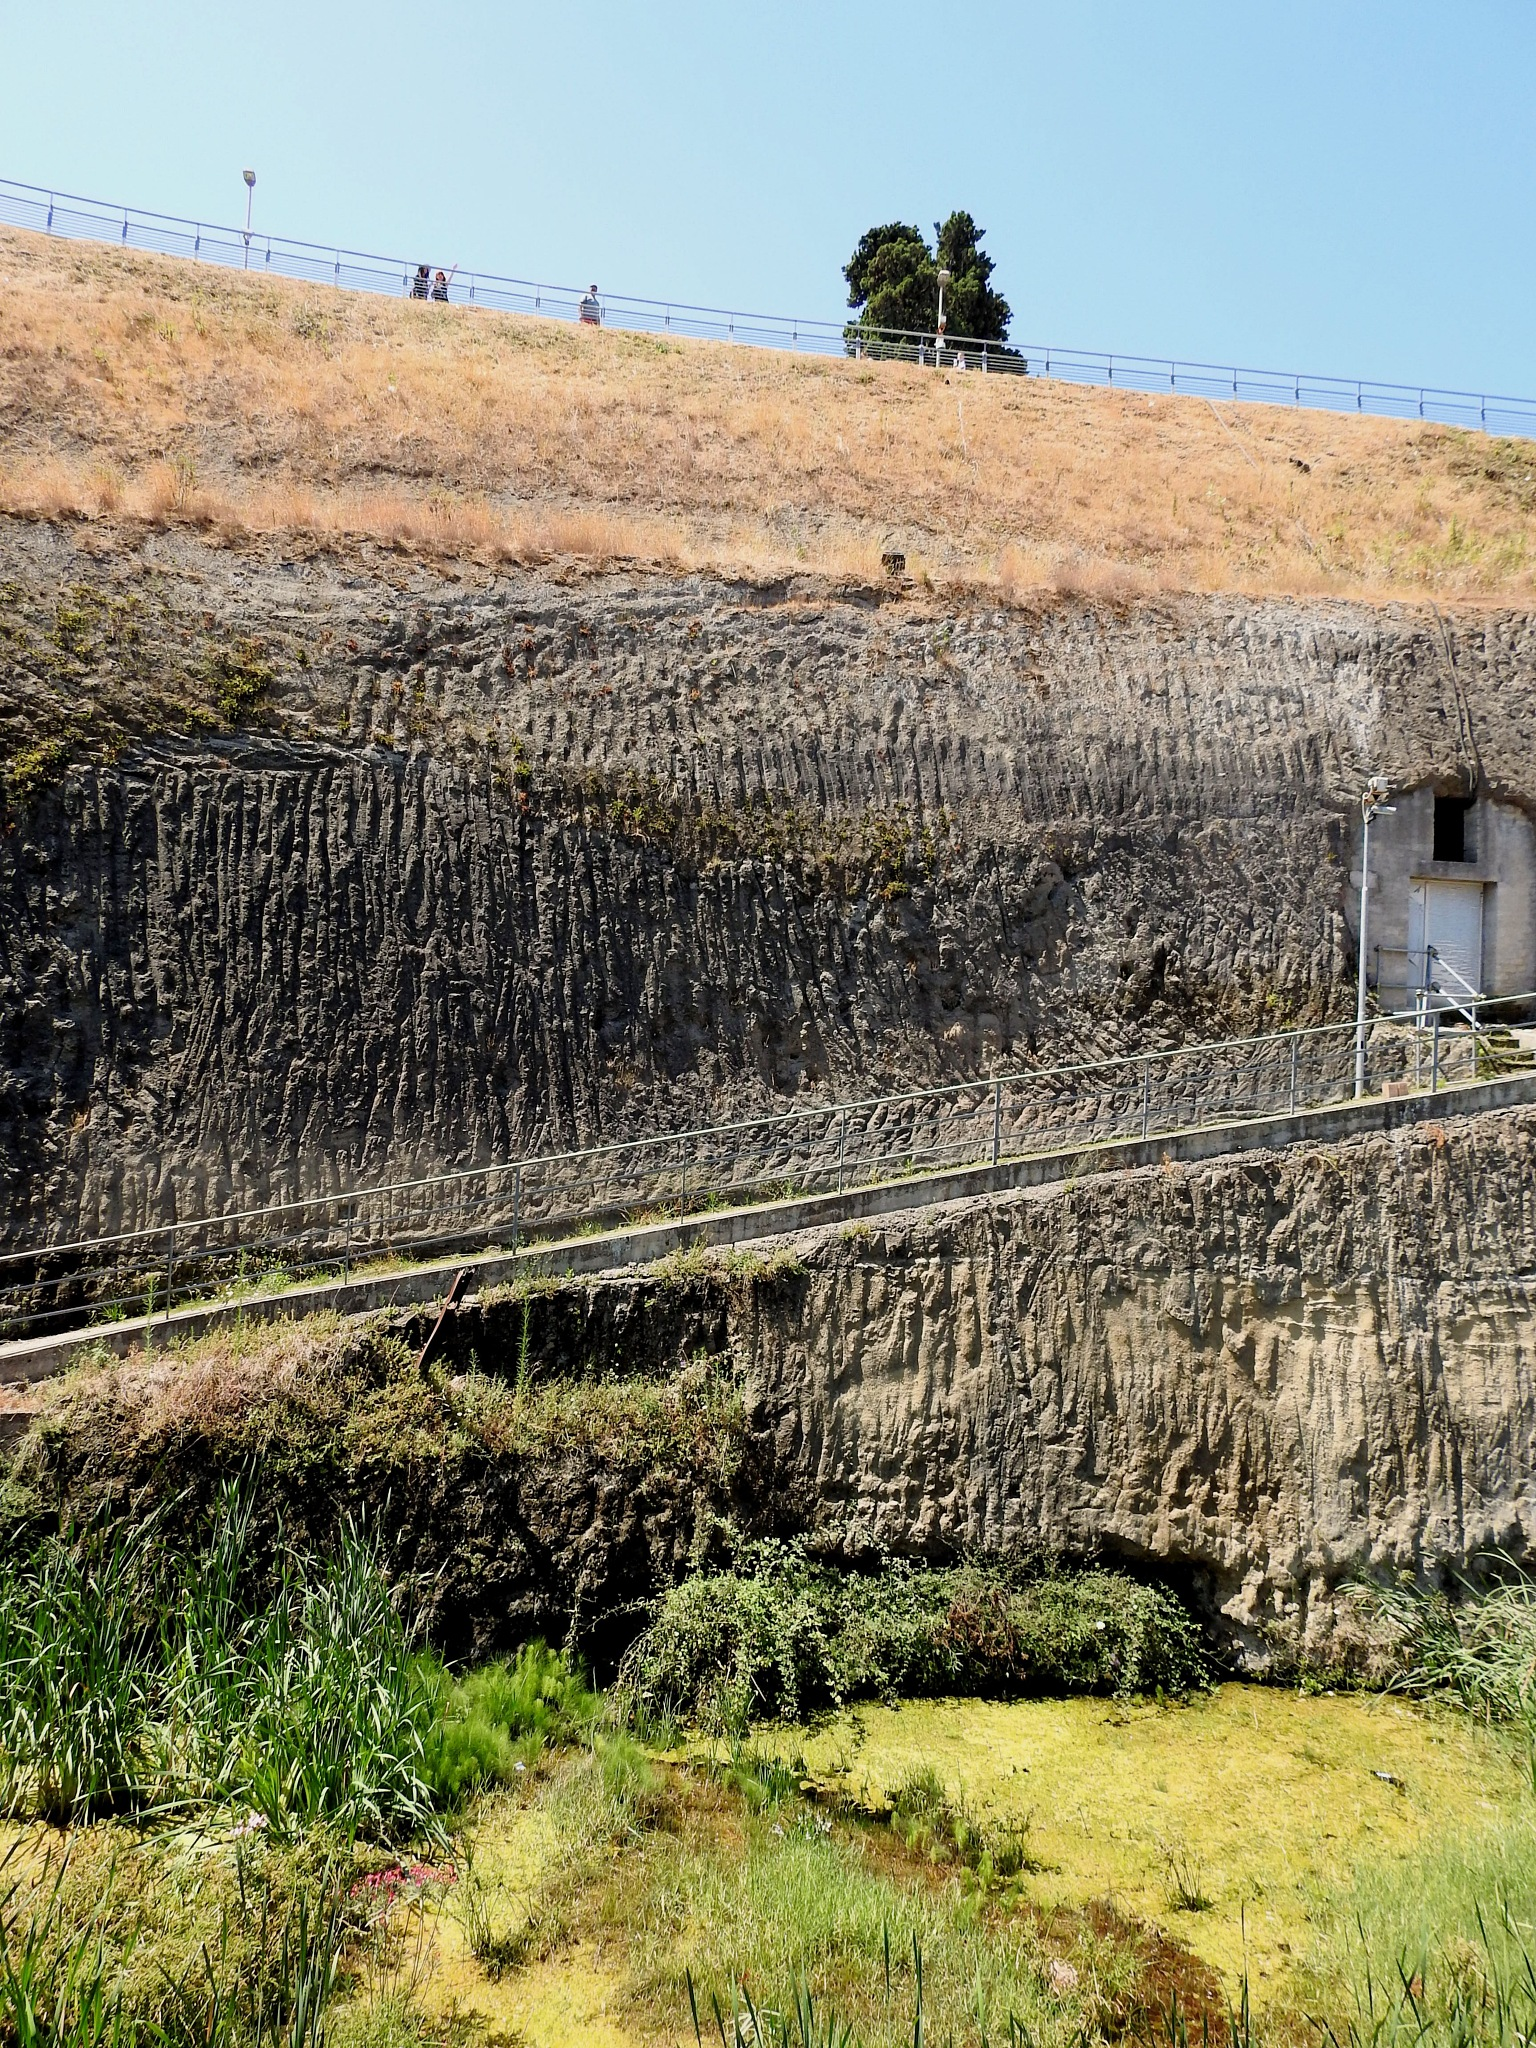 Hercolaneum Ercolano [Naples] - The Lava And Mud Wall - 1 by Arnaldo De Lisio